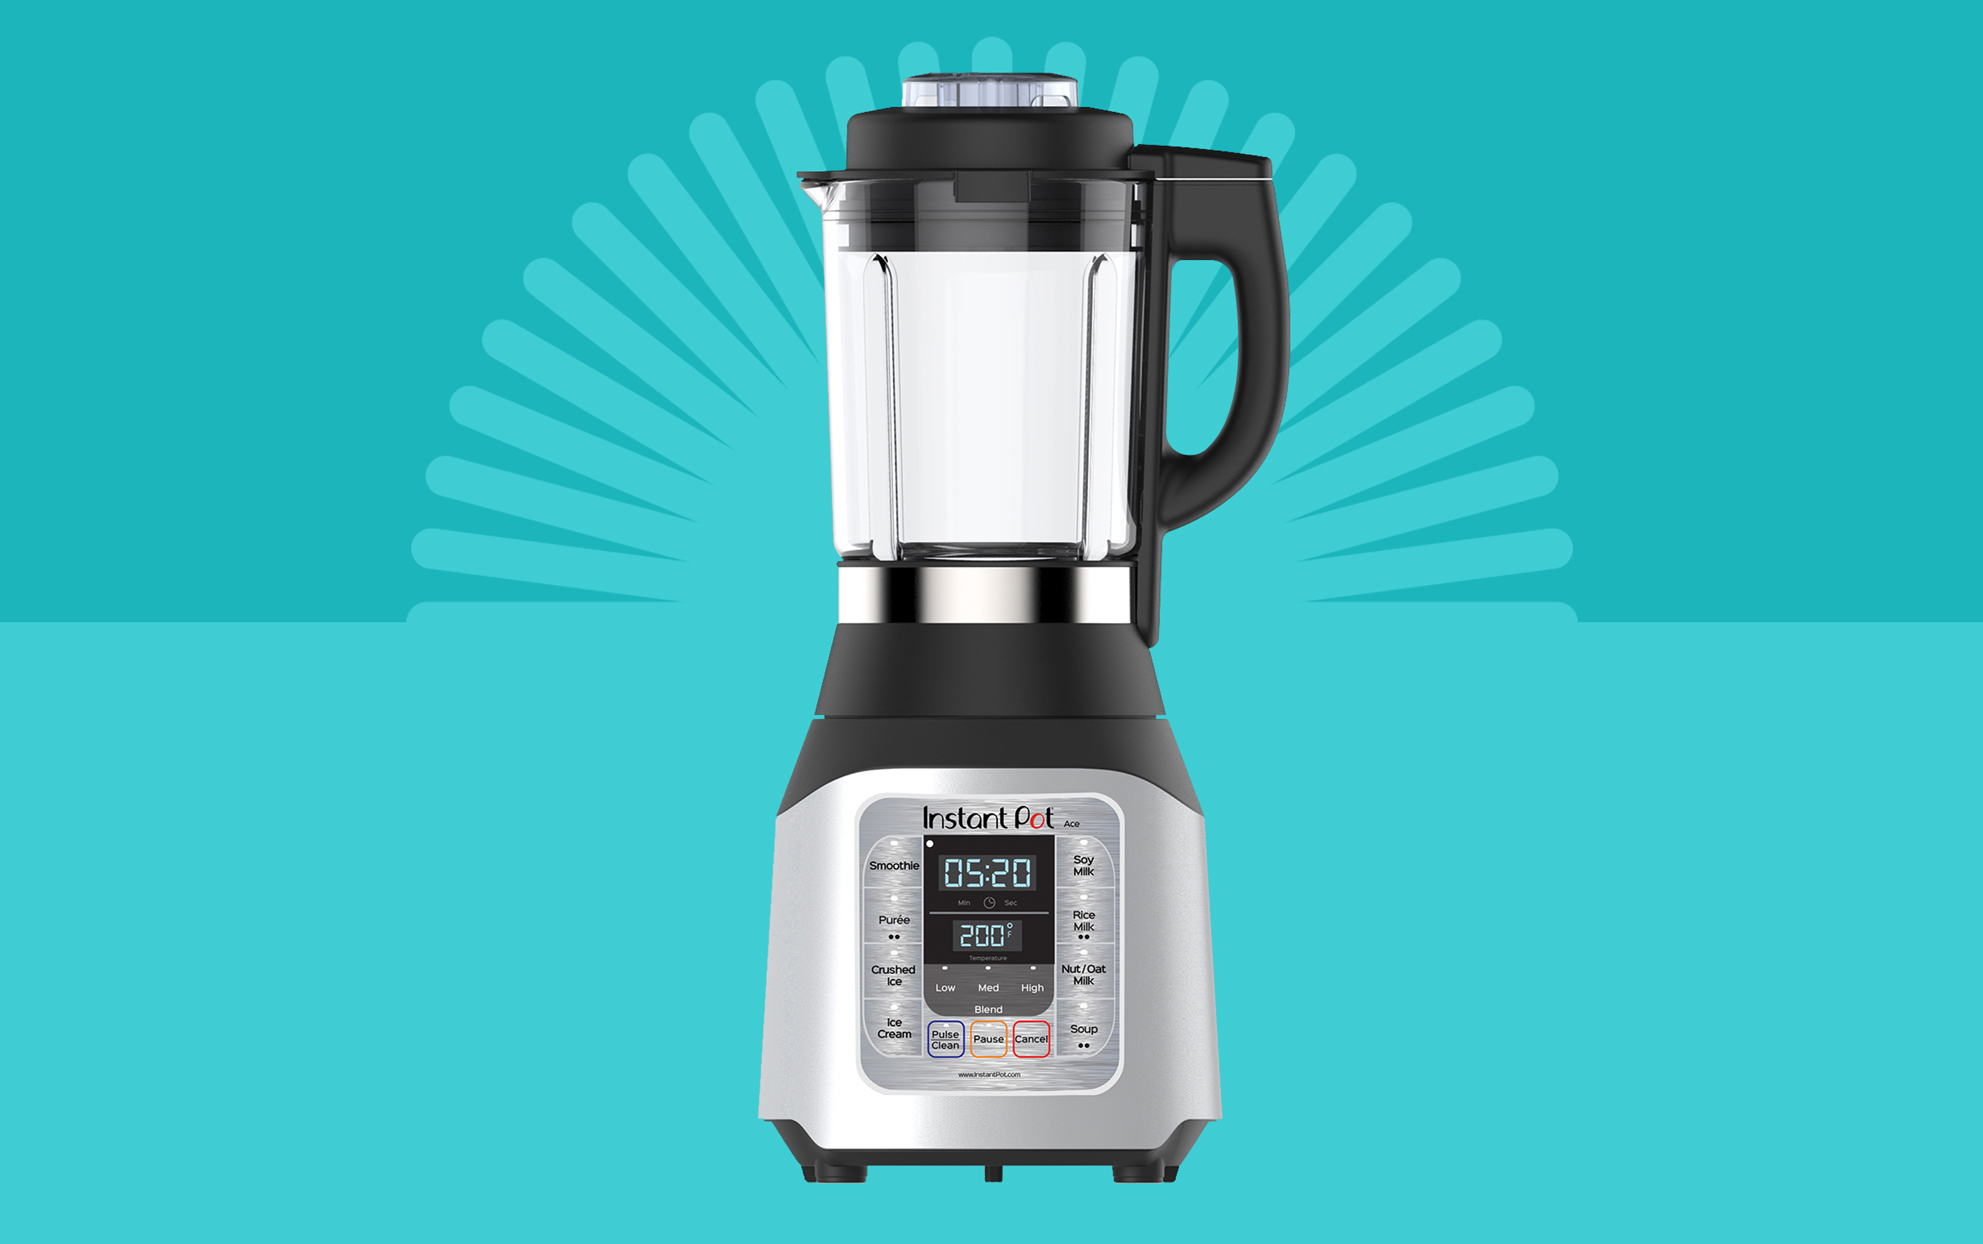 Instant pot blender on a teal background